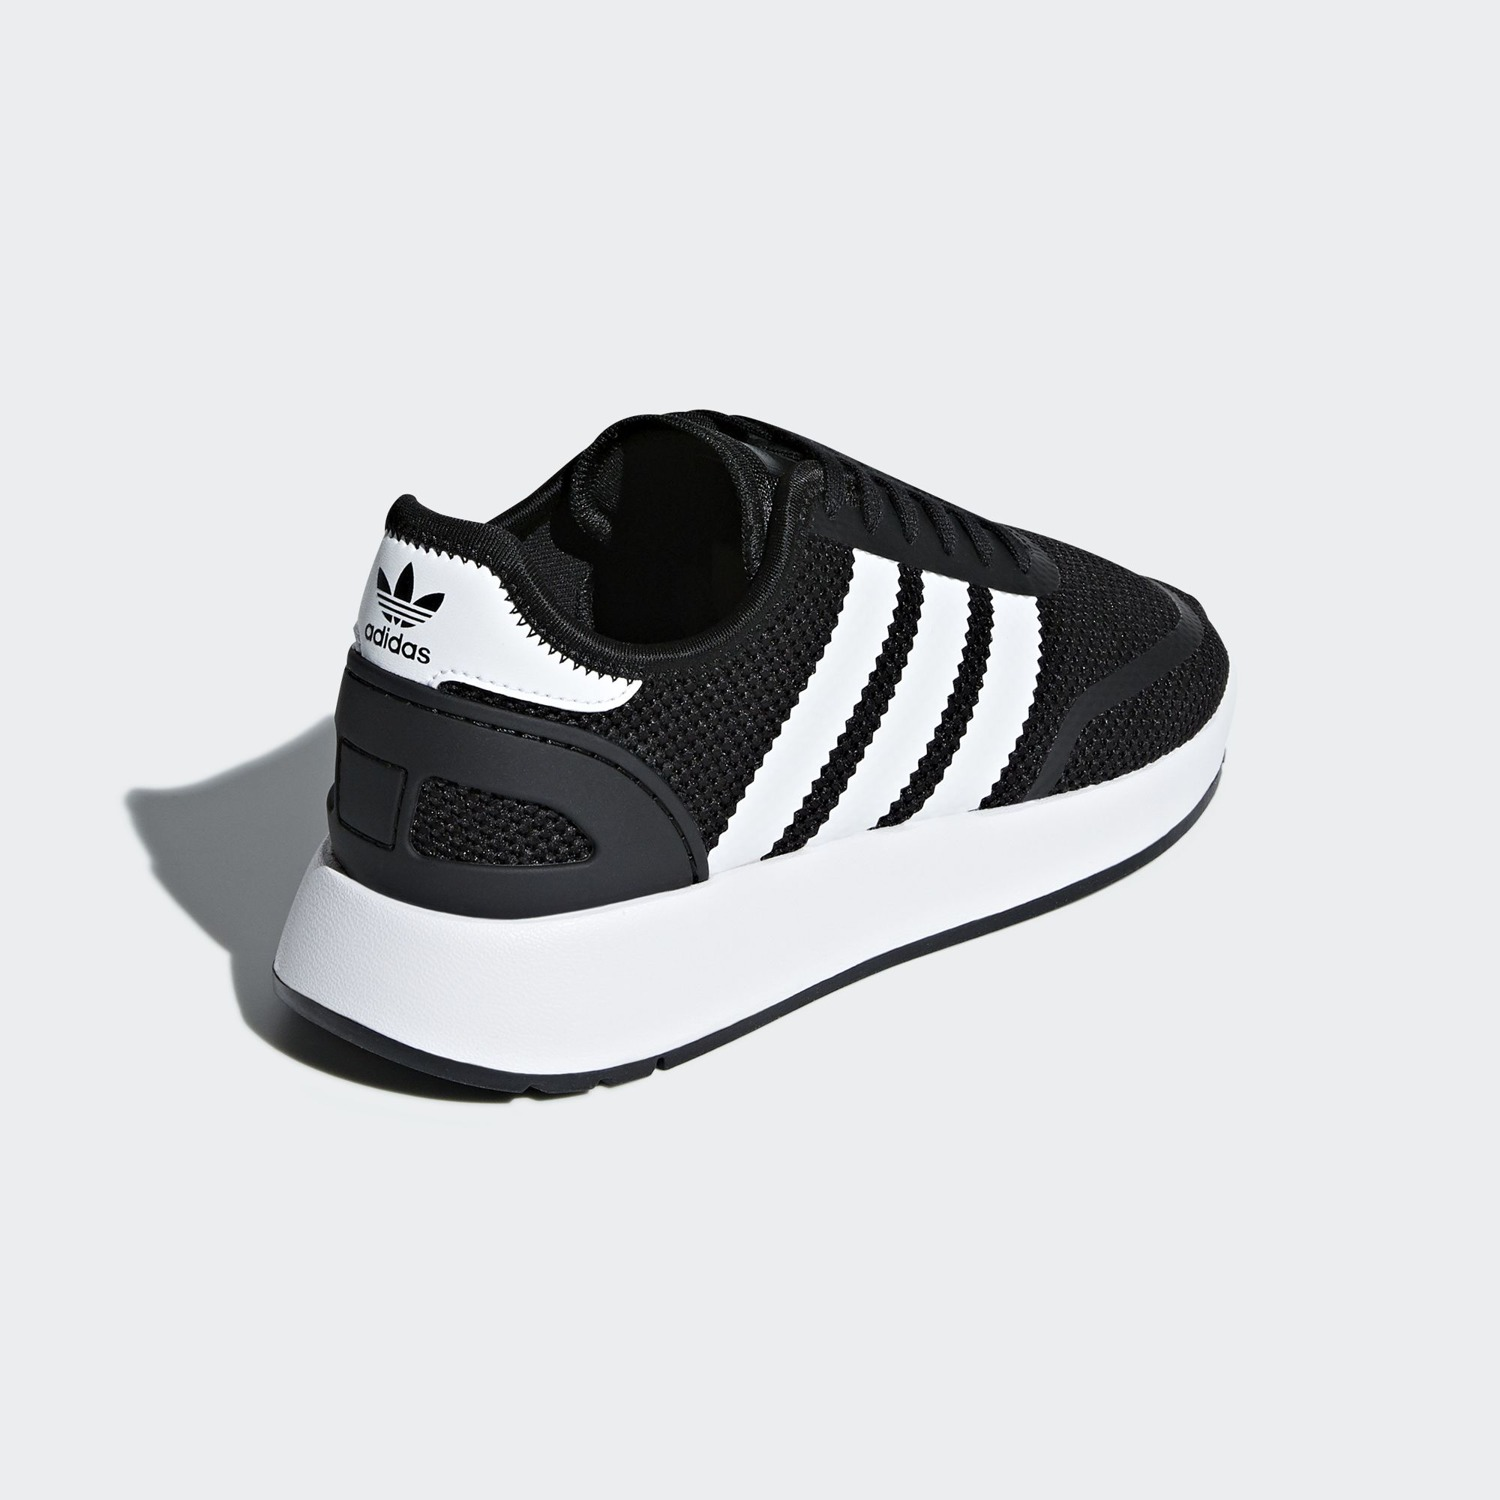 Buty juniorskie adidas Originals N-5923